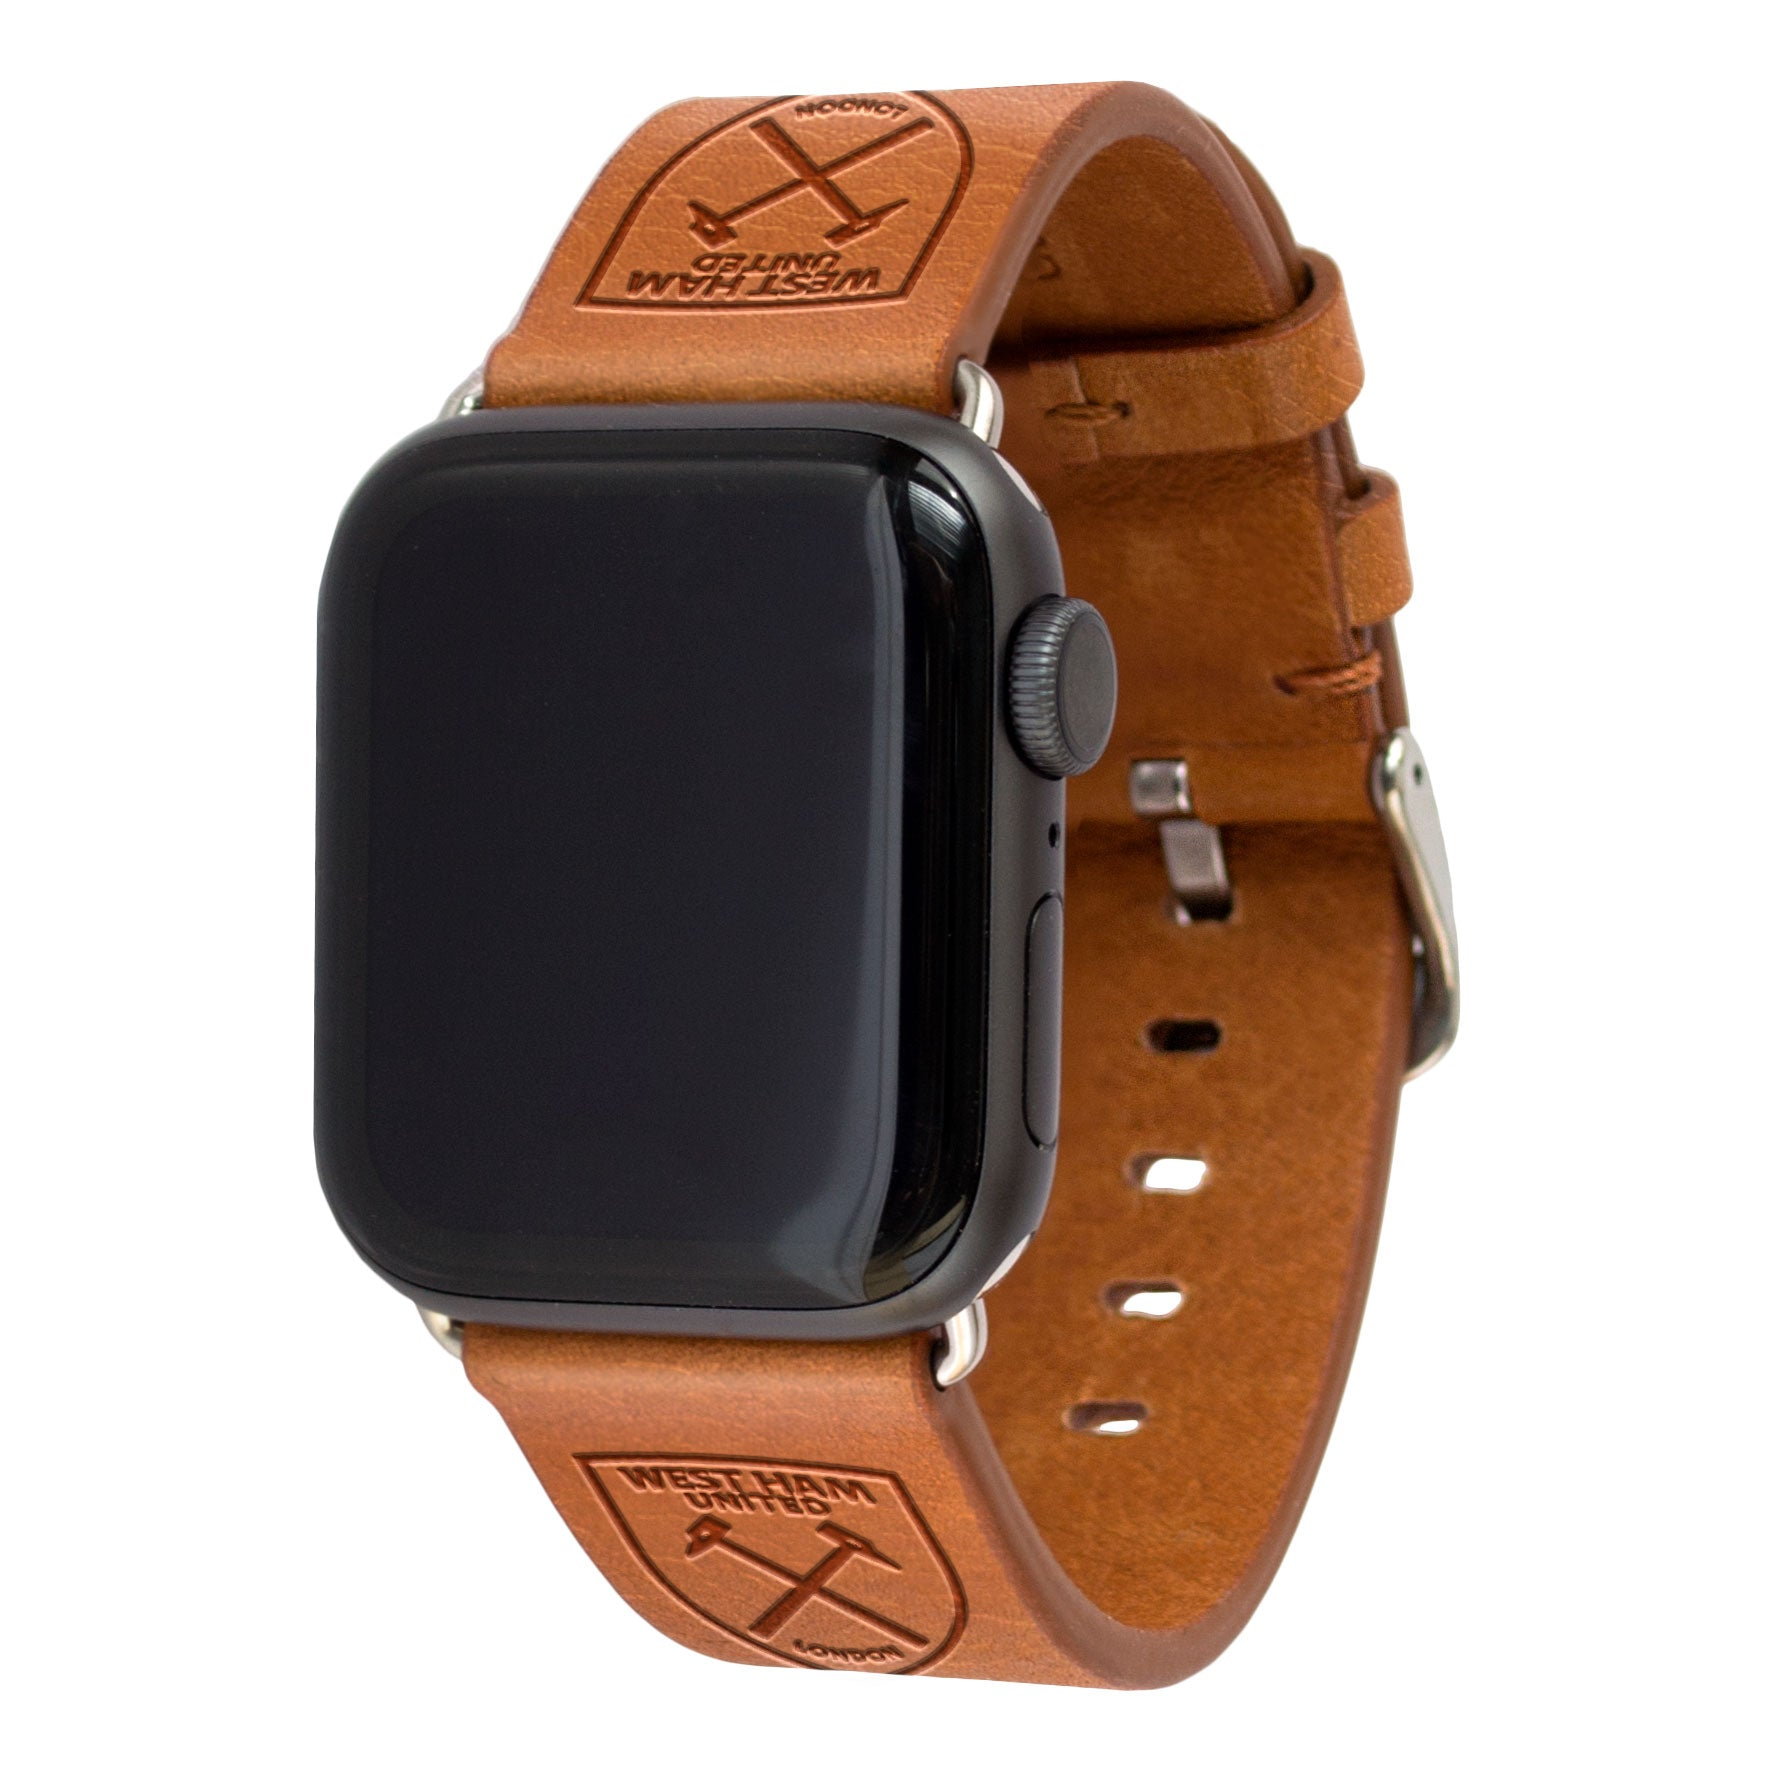 West Ham United FC Leather Apple Watch Band - Affinity Bands